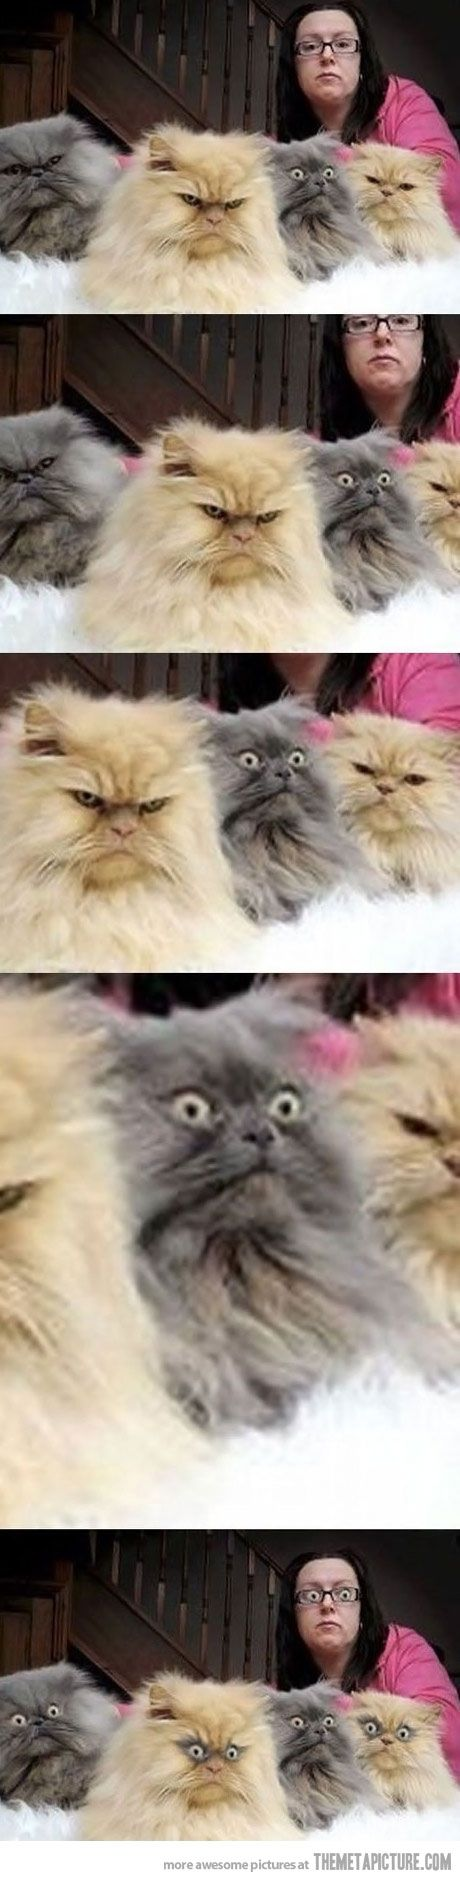 I'm not a cat person,but these are crackin me up with their little angry faces!